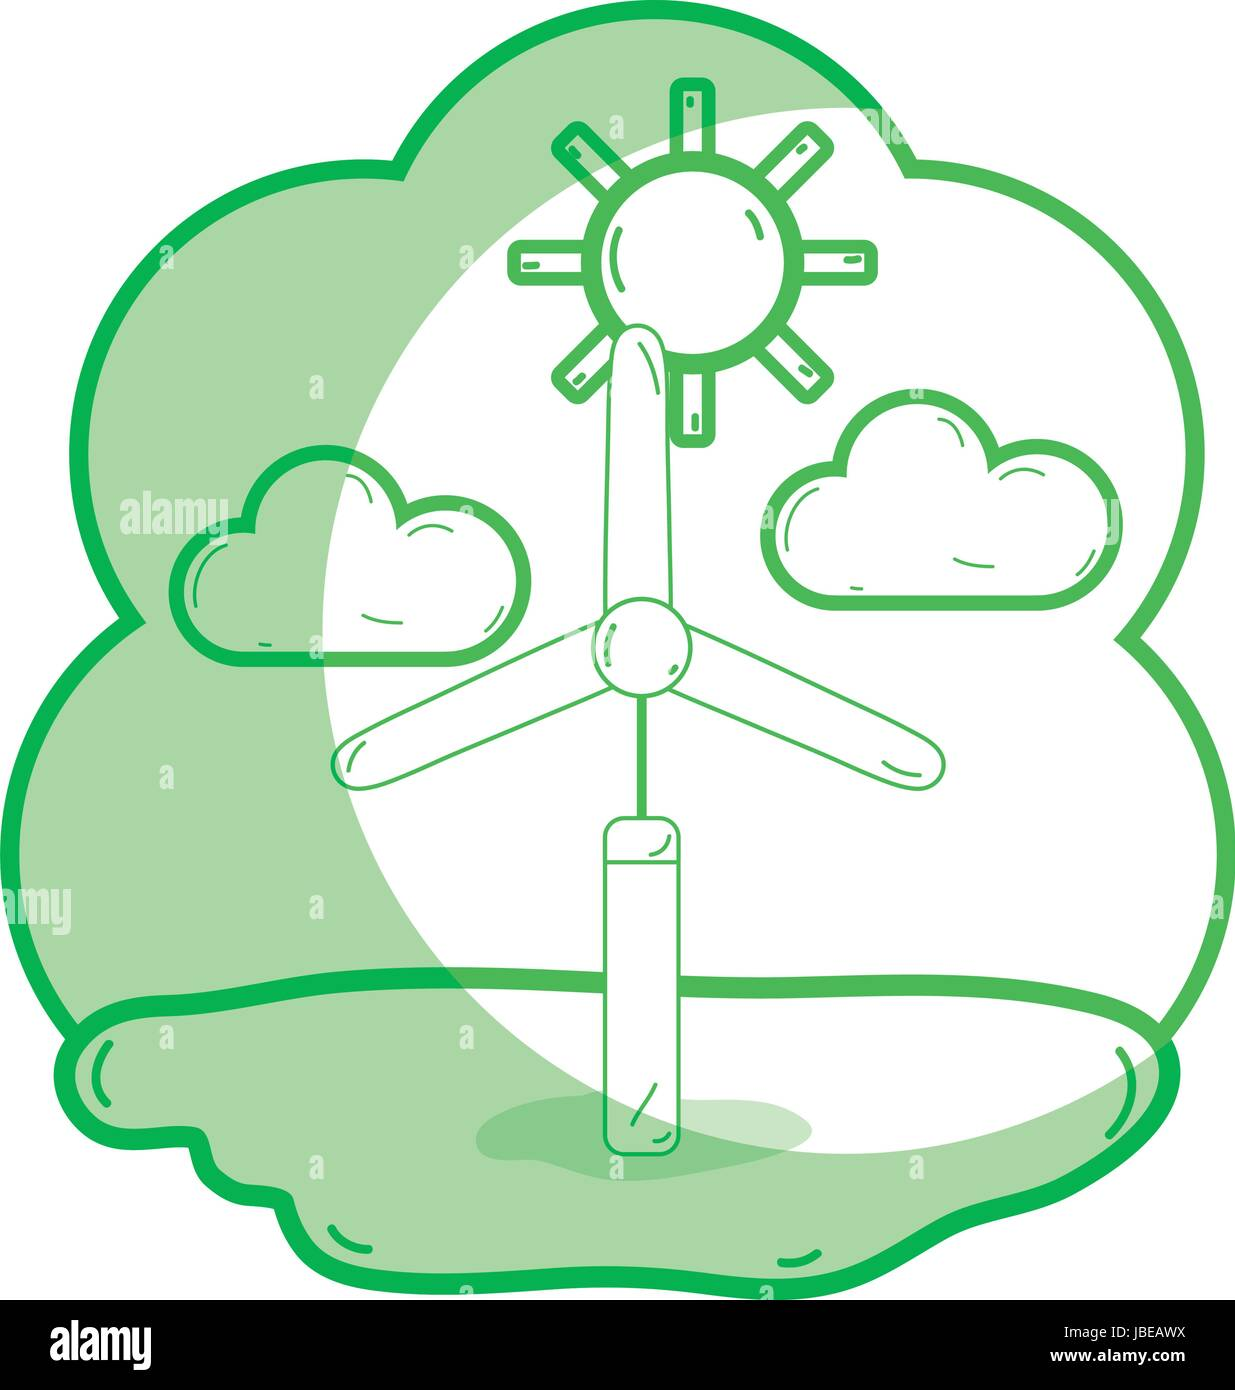 silhoutte windpower industries to healp the environment - Stock Vector